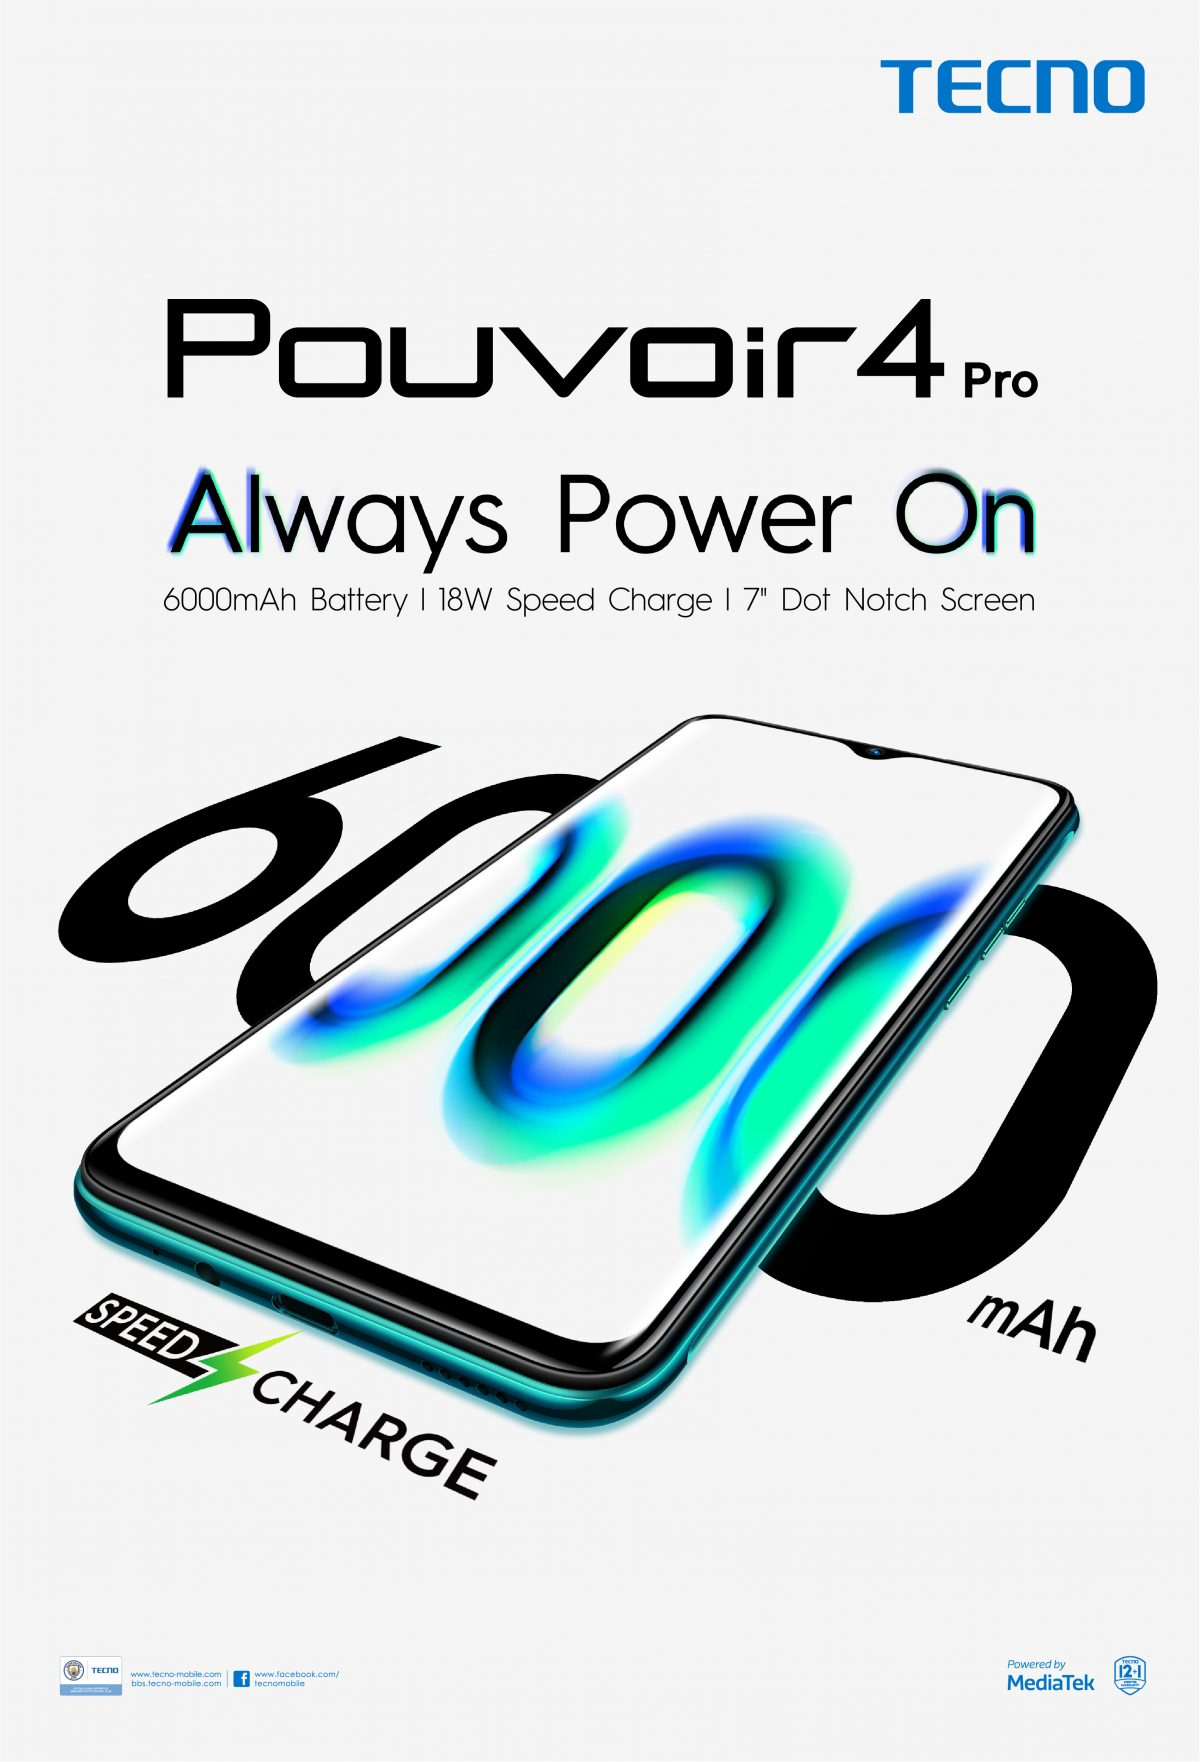 TECNO Mobile launched the Pouvoir 4 – a smartphone with four days lasting power